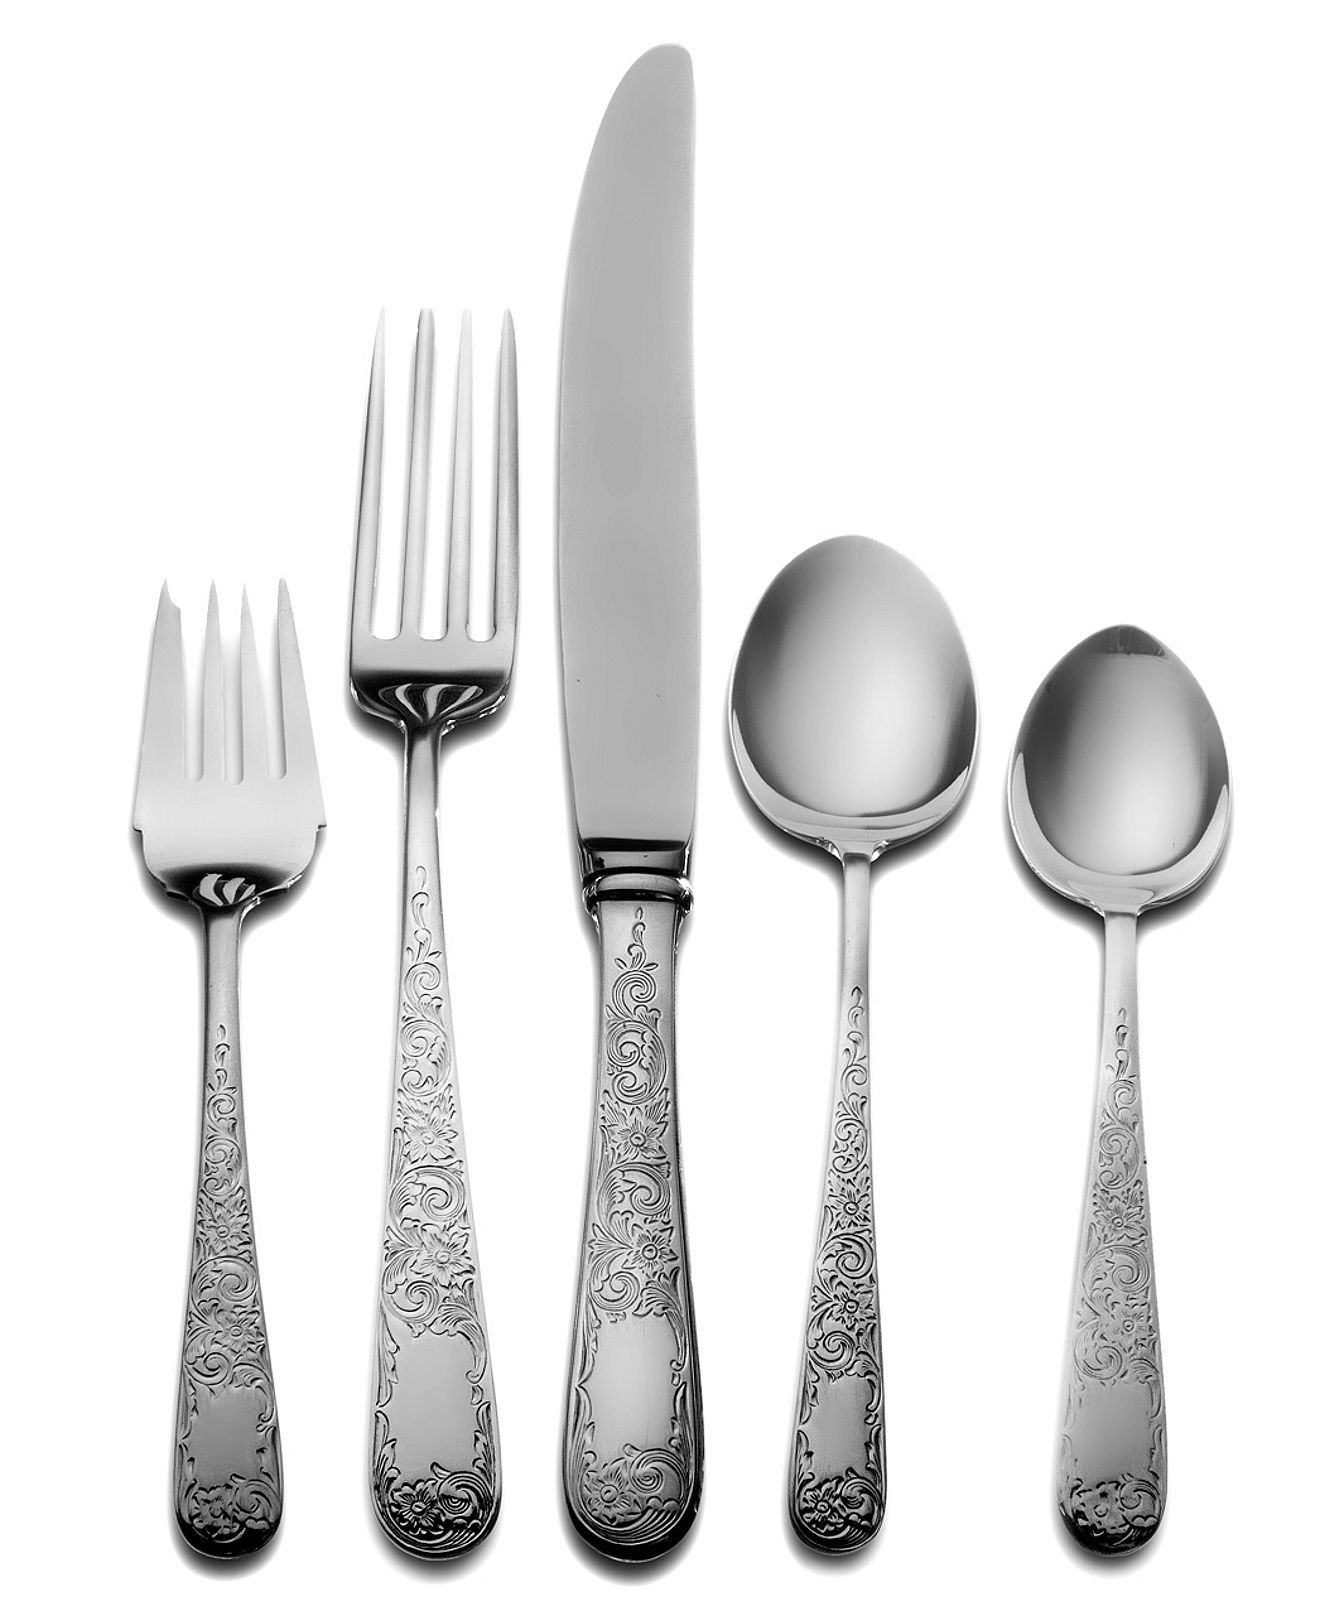 kirk stieff sterling silver flatware old maryland engraved 5 dinner piece place setting flatware - Sterling Silver Flatware